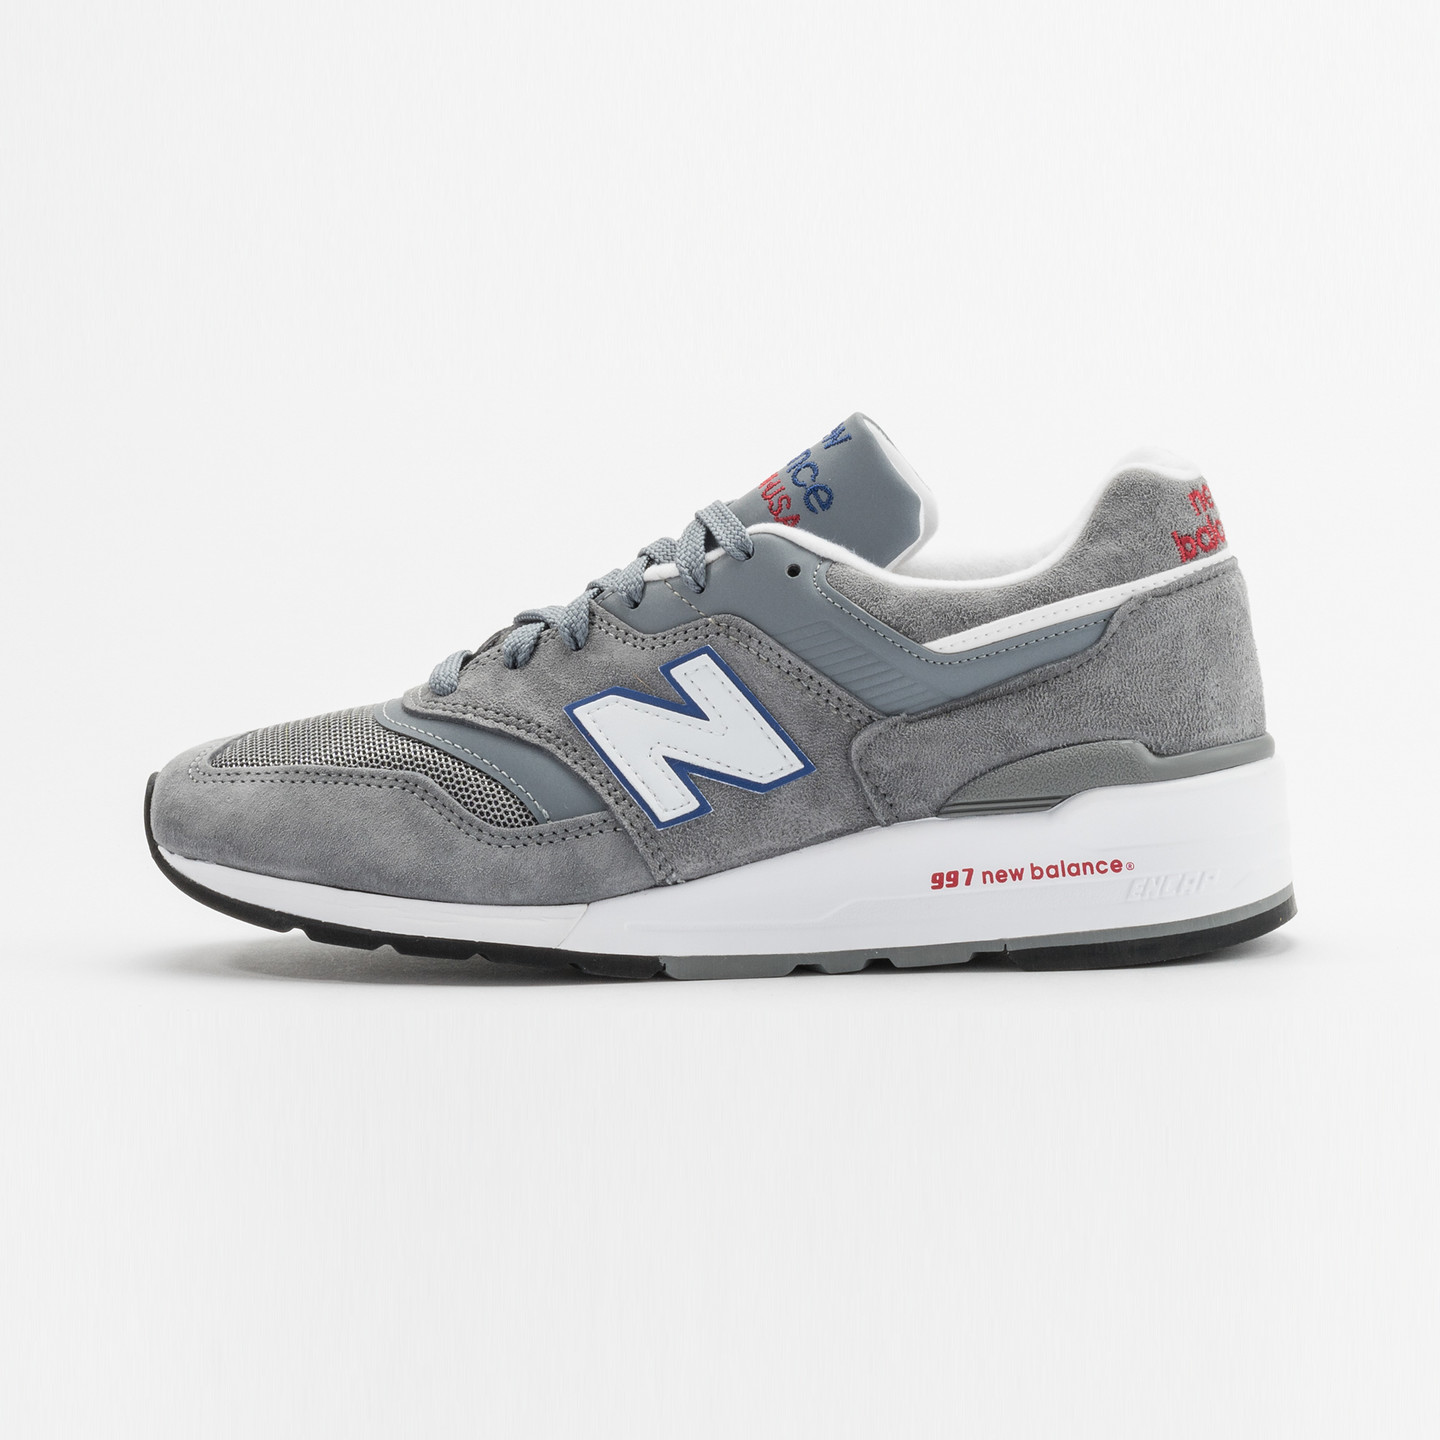 New Balance M997 Made in USA Grey / Blue / Red M997CNR-44